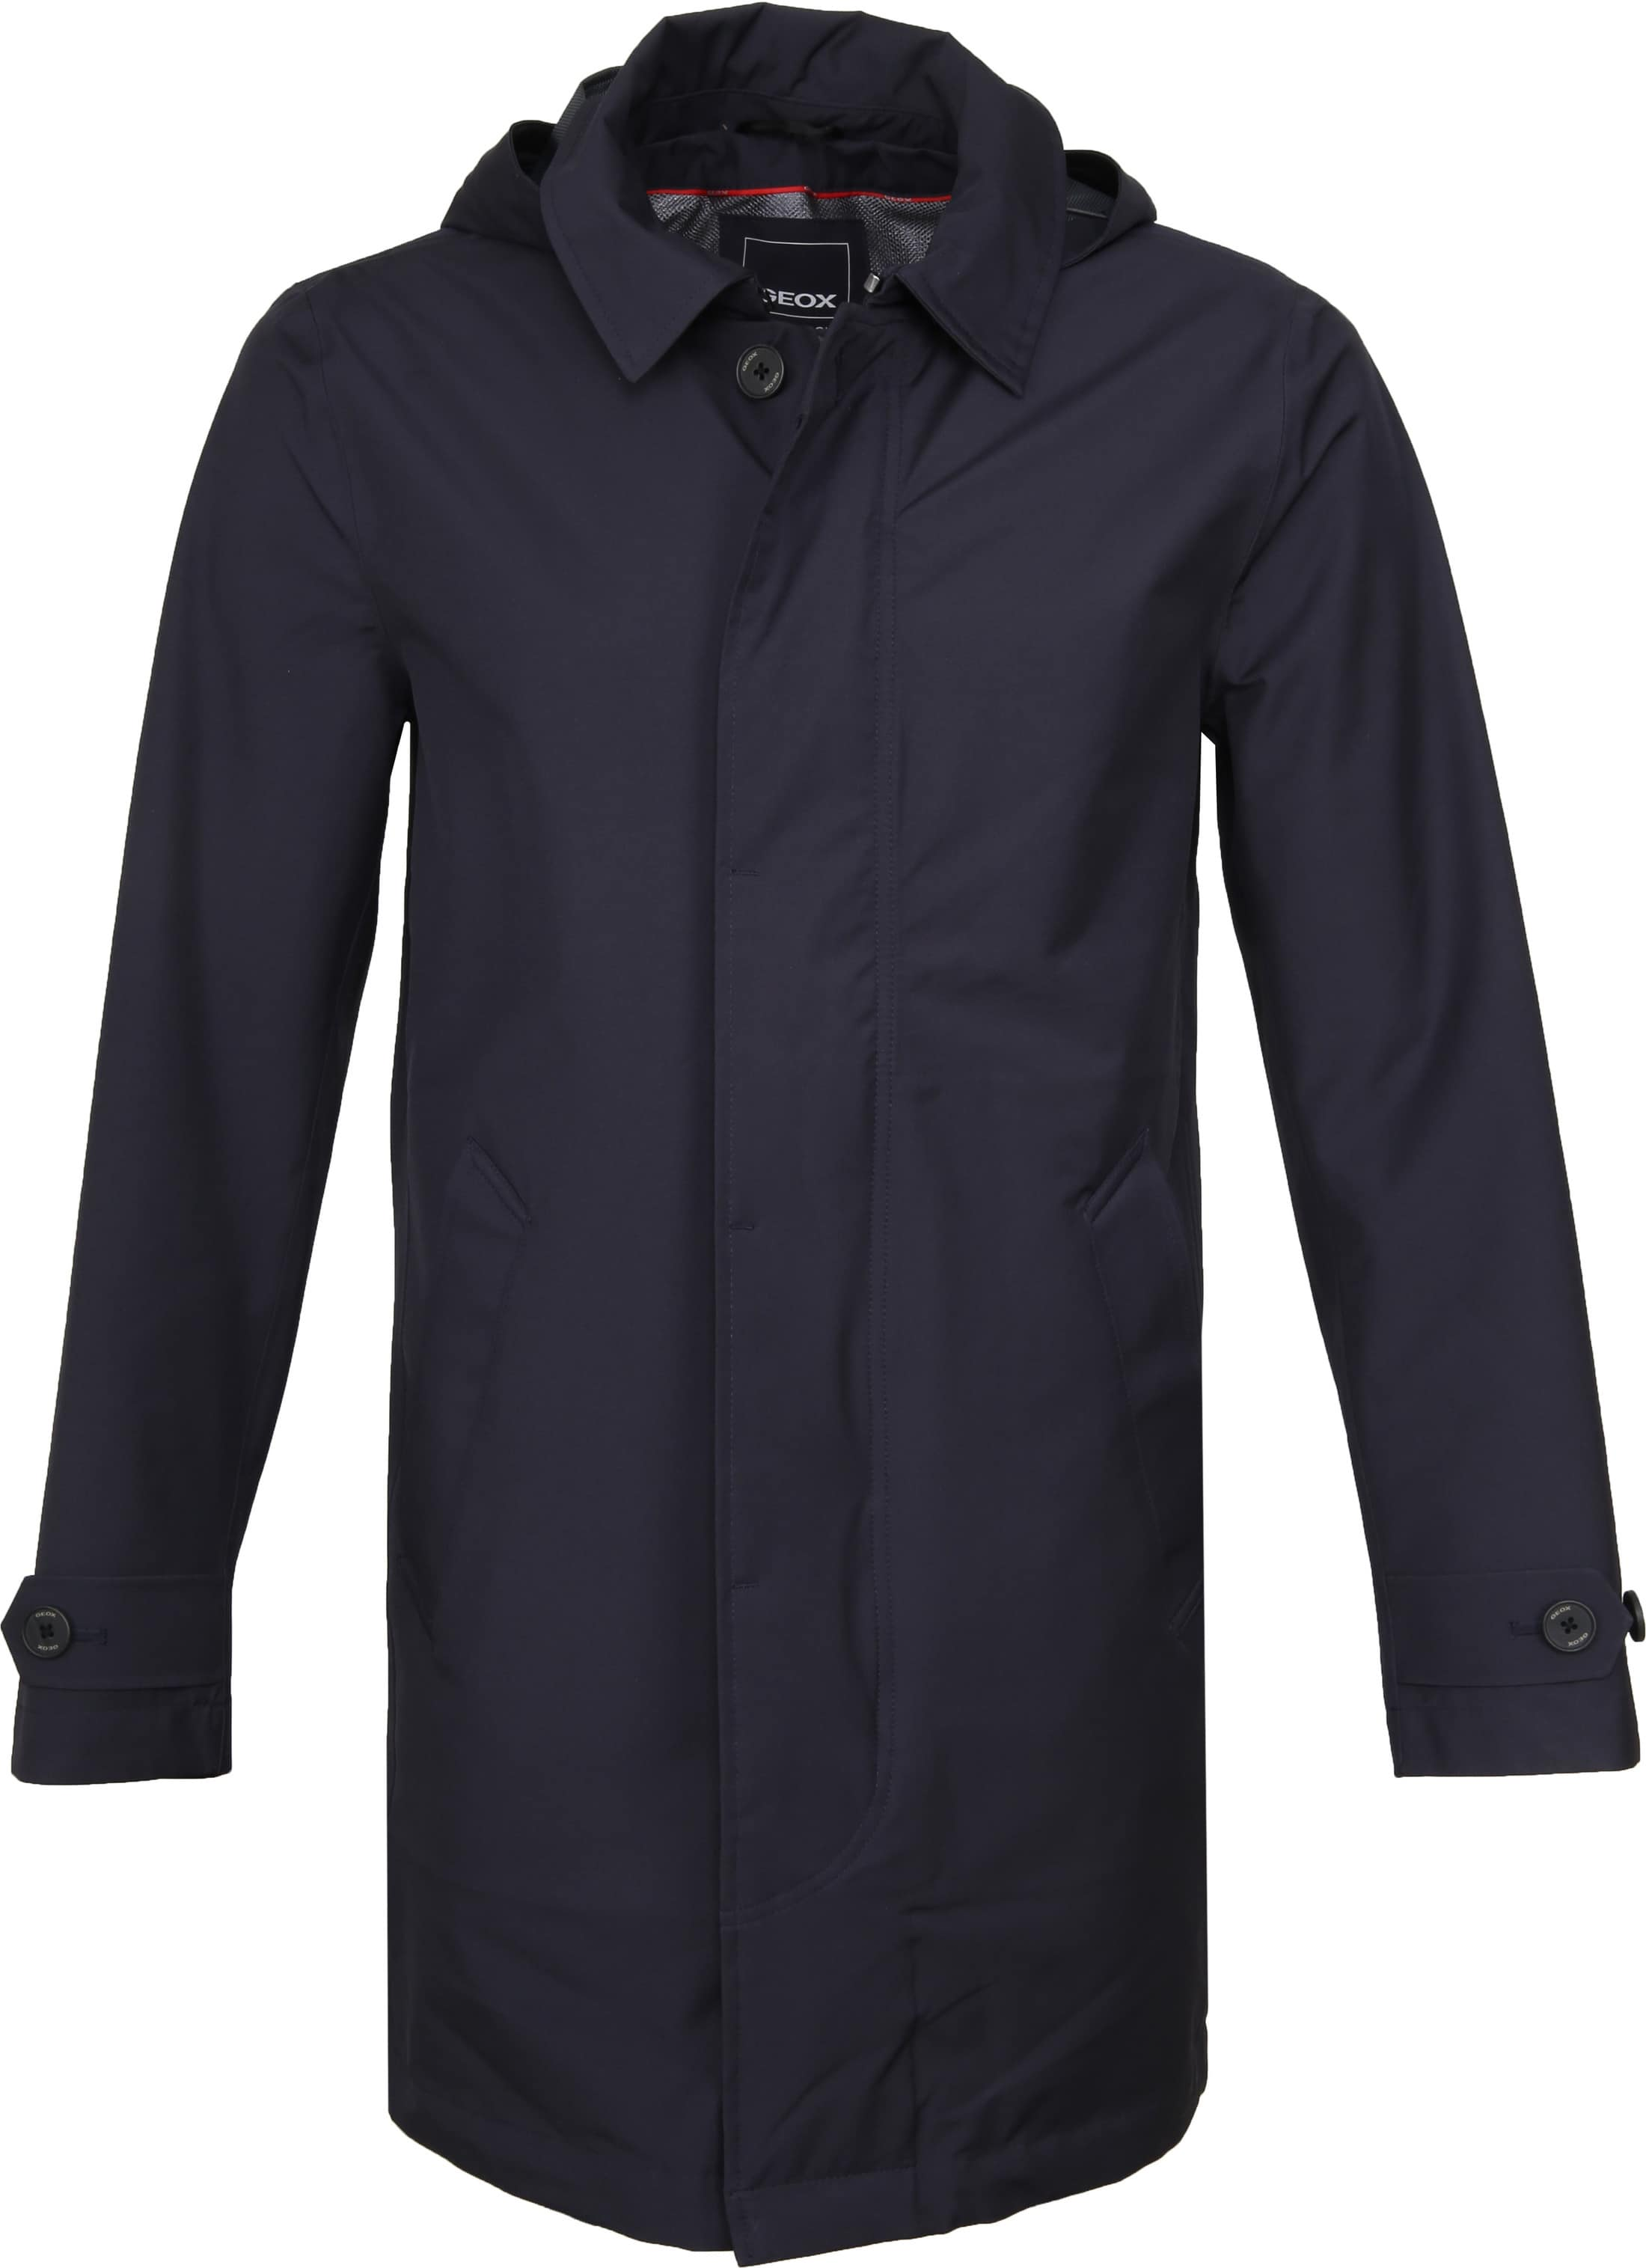 Geox Coat Sandford Navy foto 0